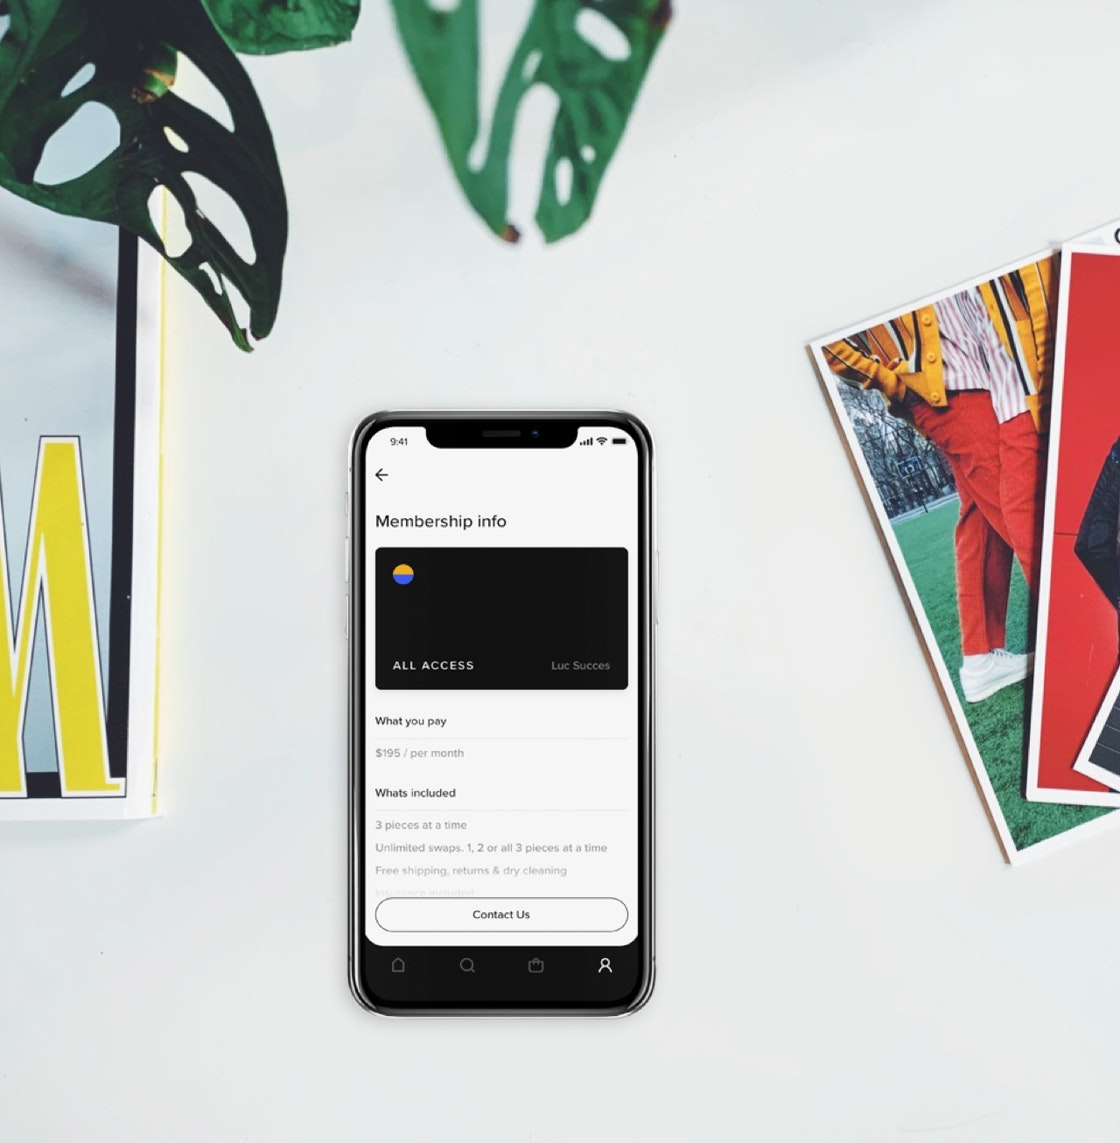 image of the iOS app